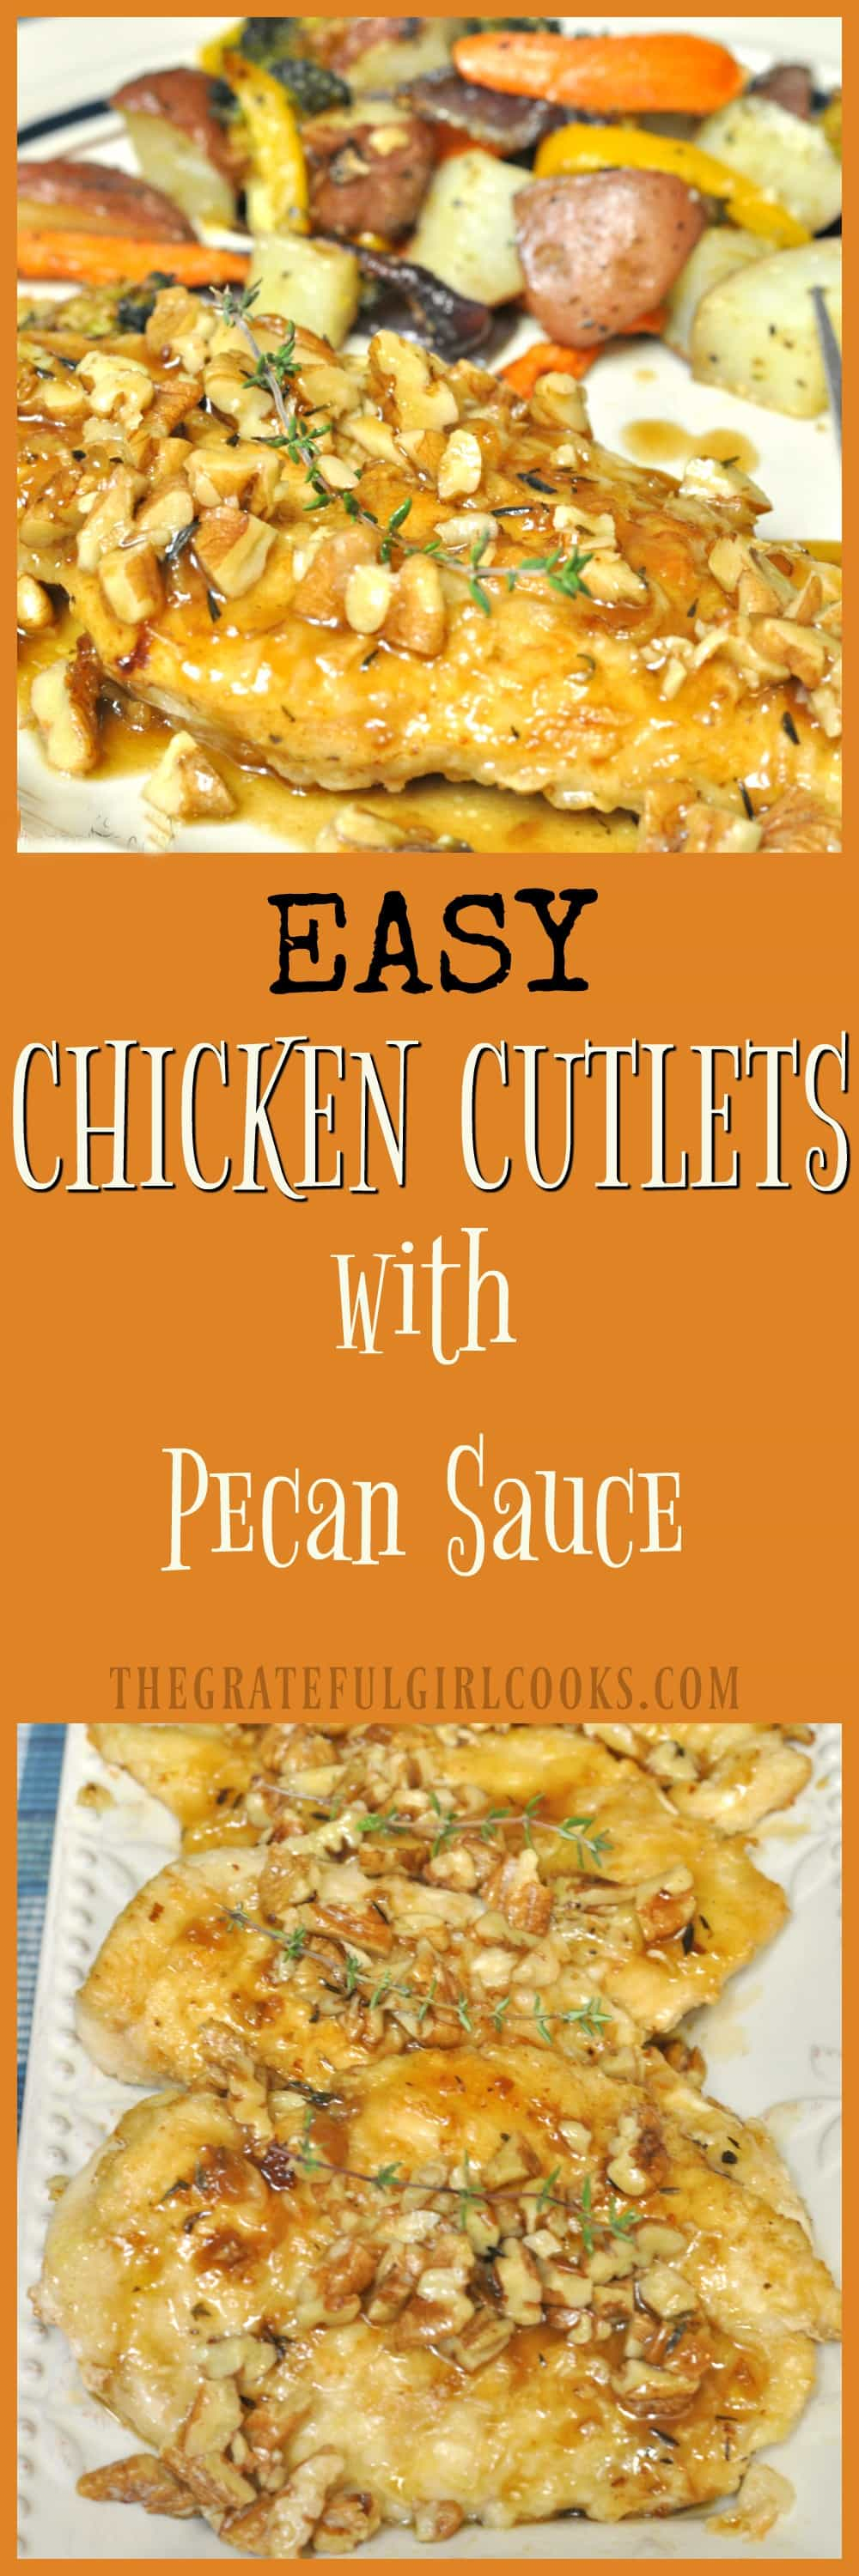 Chicken Cutlets With Pecan Sauce | The Grateful Girl Cooks!